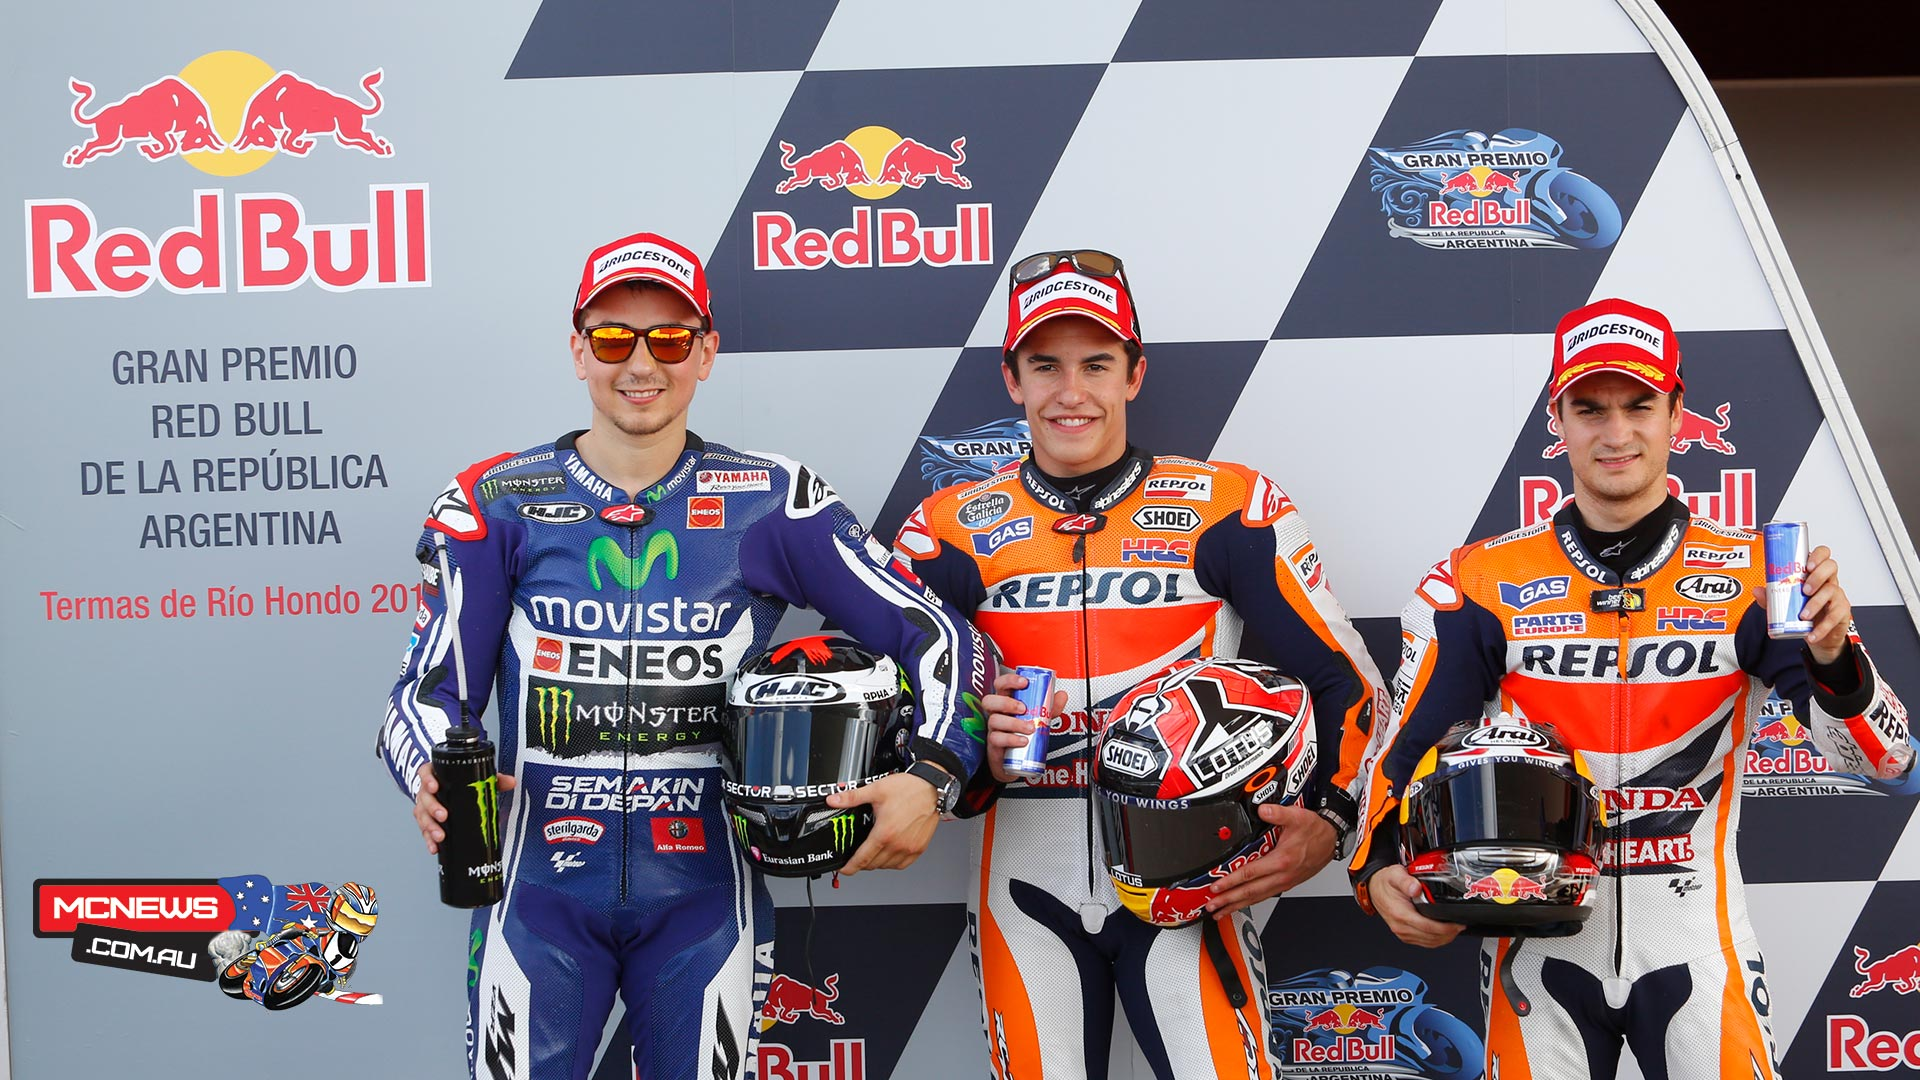 Marc Marquez was on pole for the 2014 Gran Premio Red Bull de la Republica Argentina ahead of Jorge Lorenzo and Dani Pedrosa.